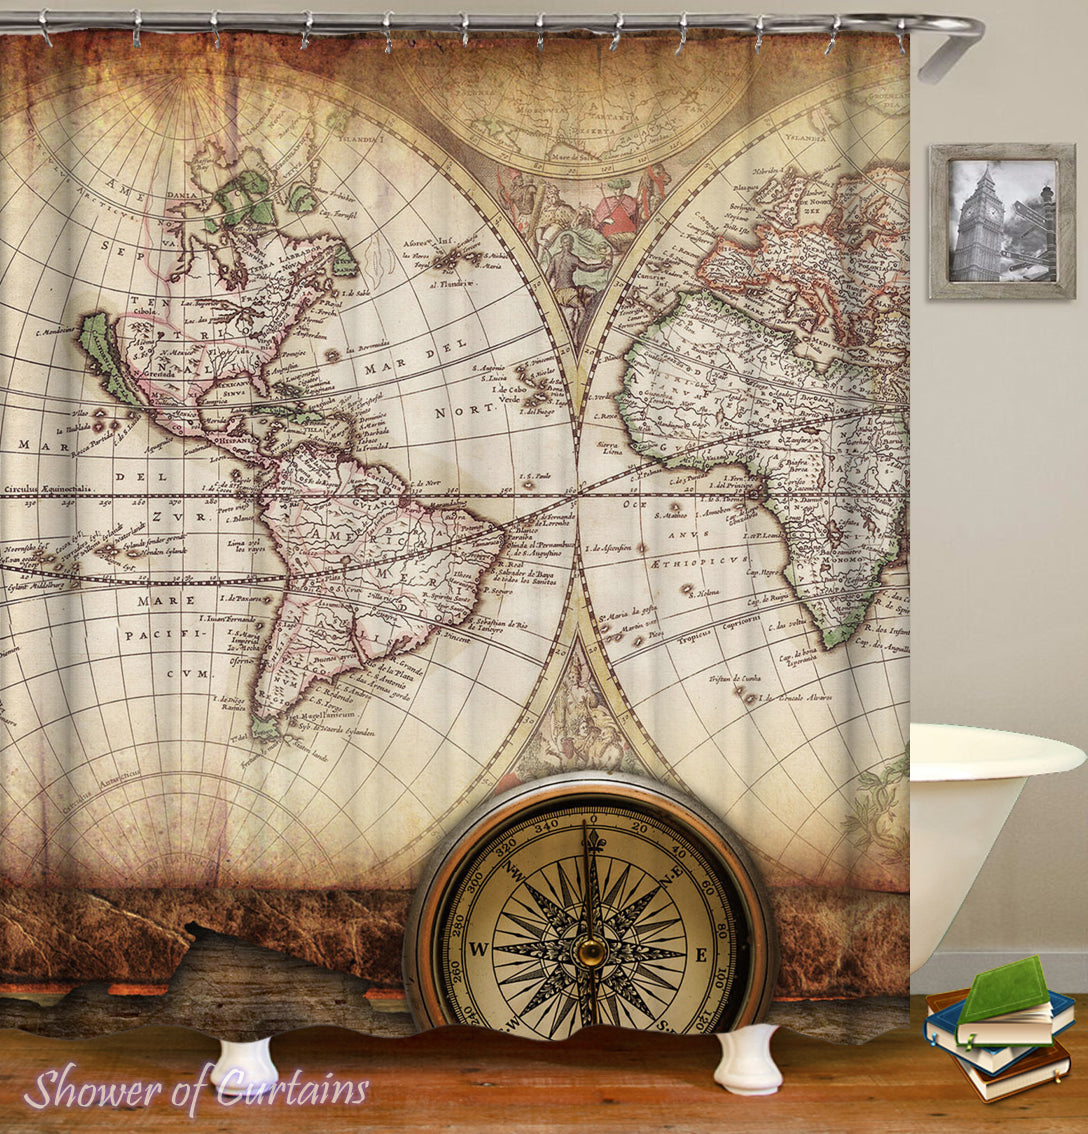 Shower Curtains Antiquated World Map Shower Of Curtains